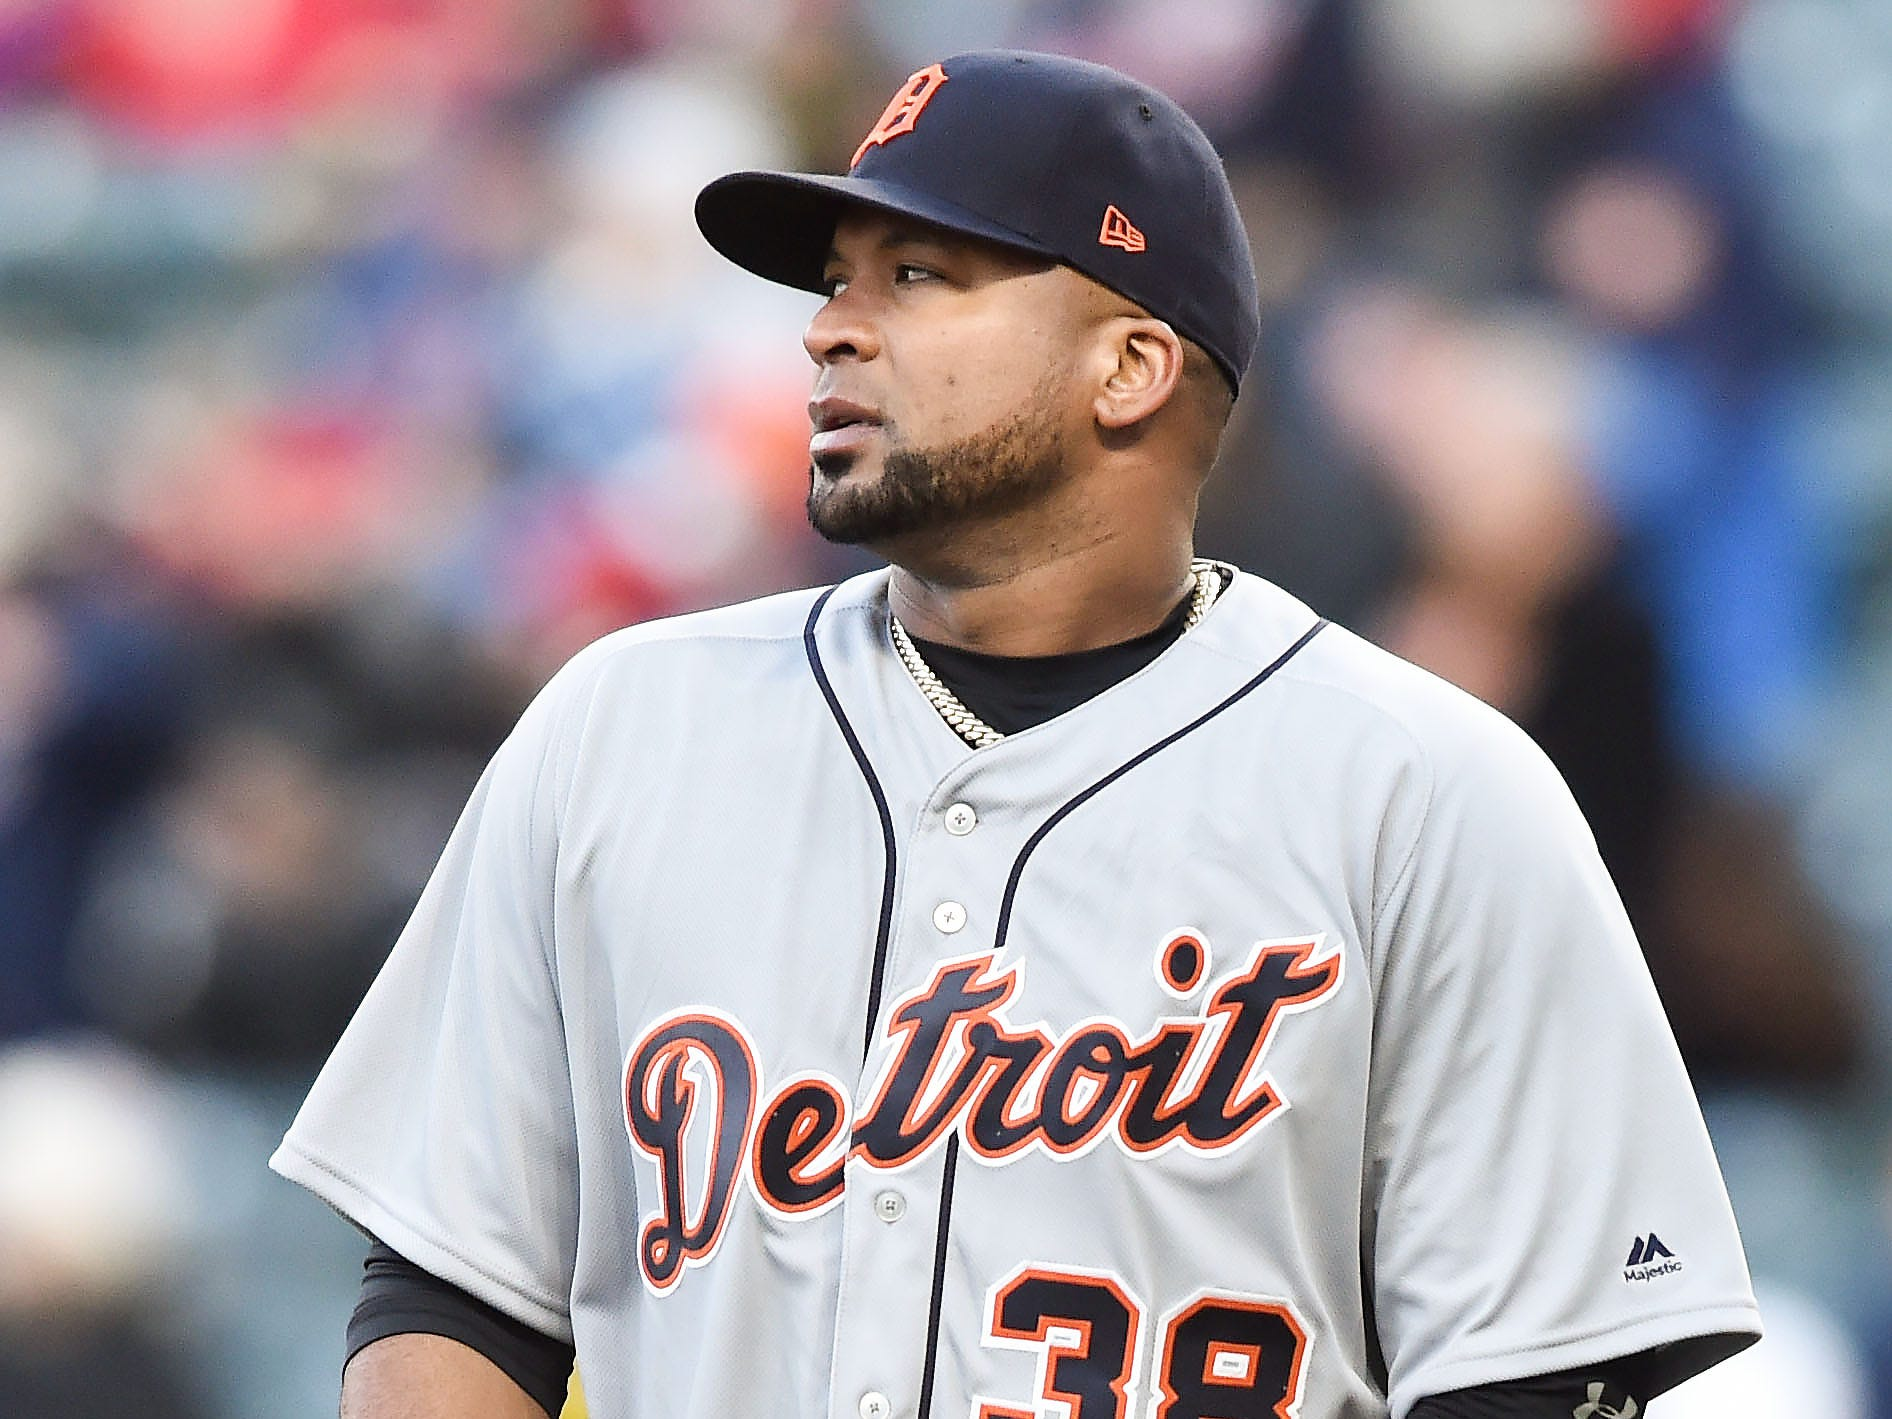 April 9 in Cleveland: Indians 2, Tigers 0. Francisco Liriano reacts after giving up a two-run home run to Bradley Zimmer in the fifth inning at Progressive Field.